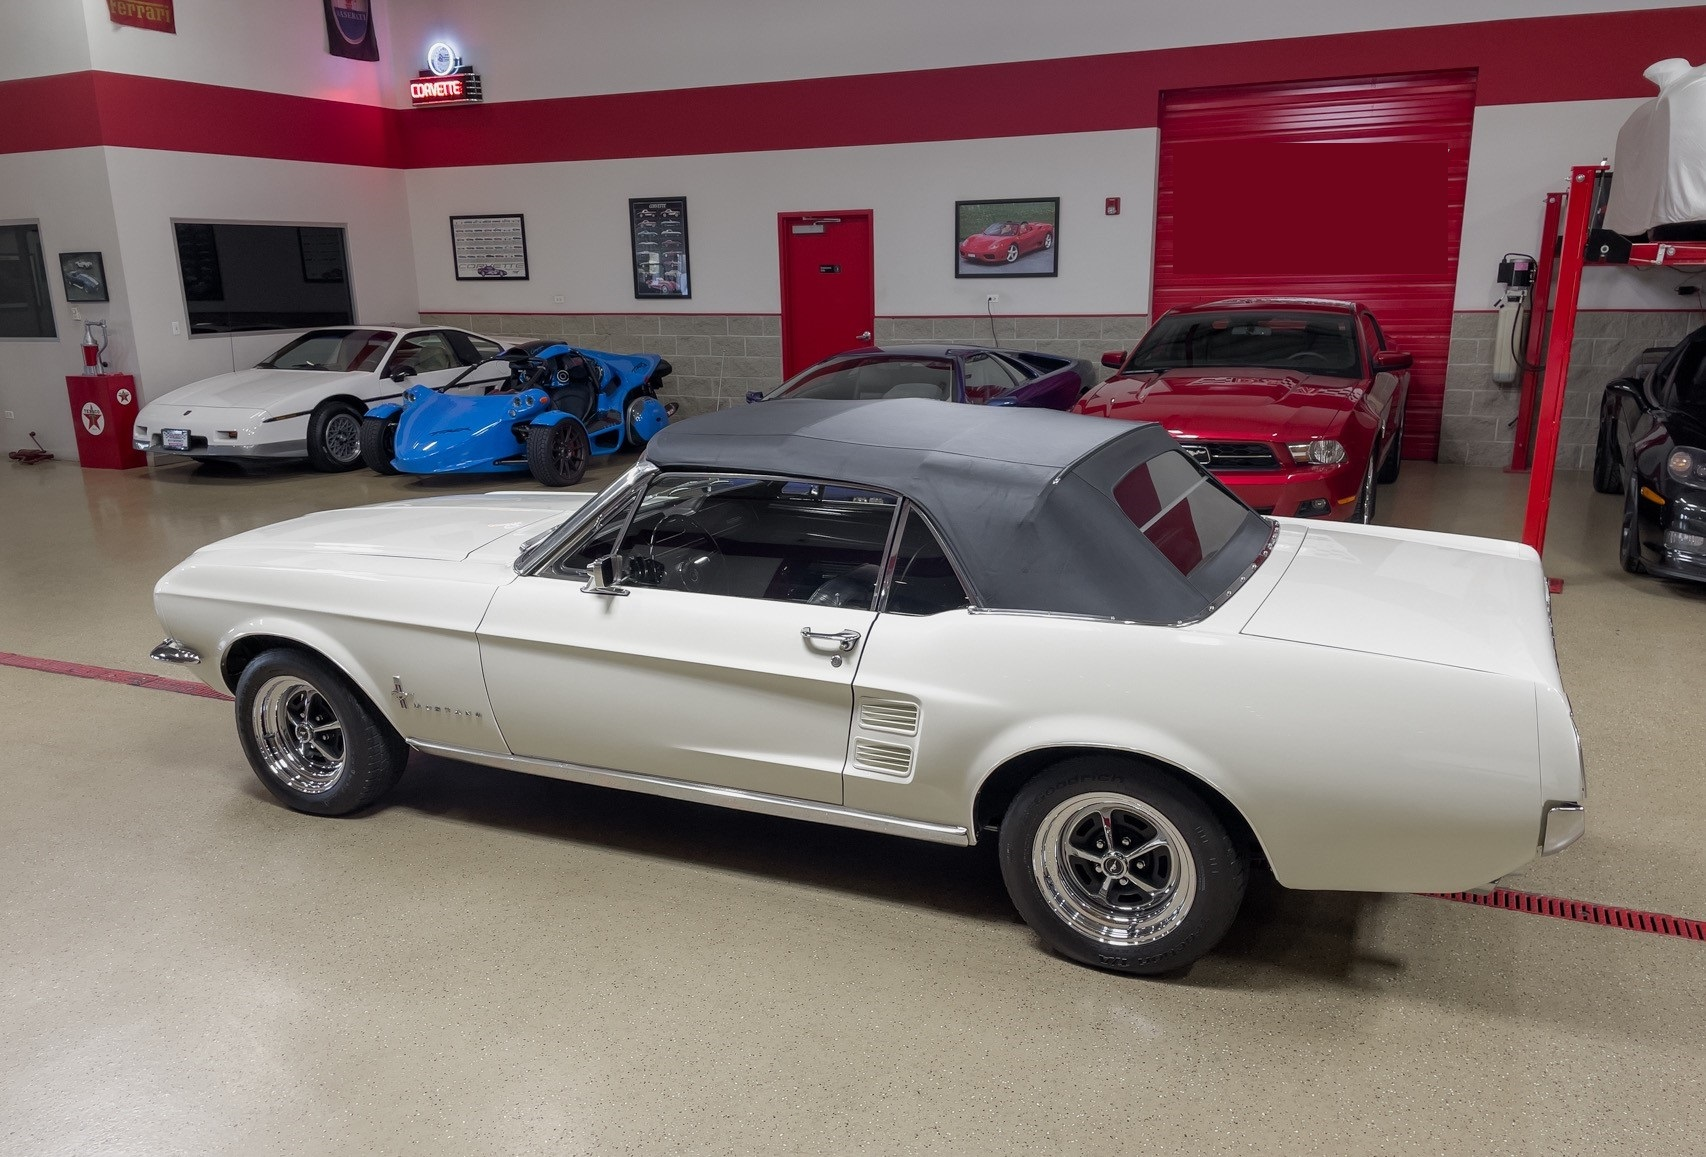 Ford-Mustang-cabriolet-1967-a23